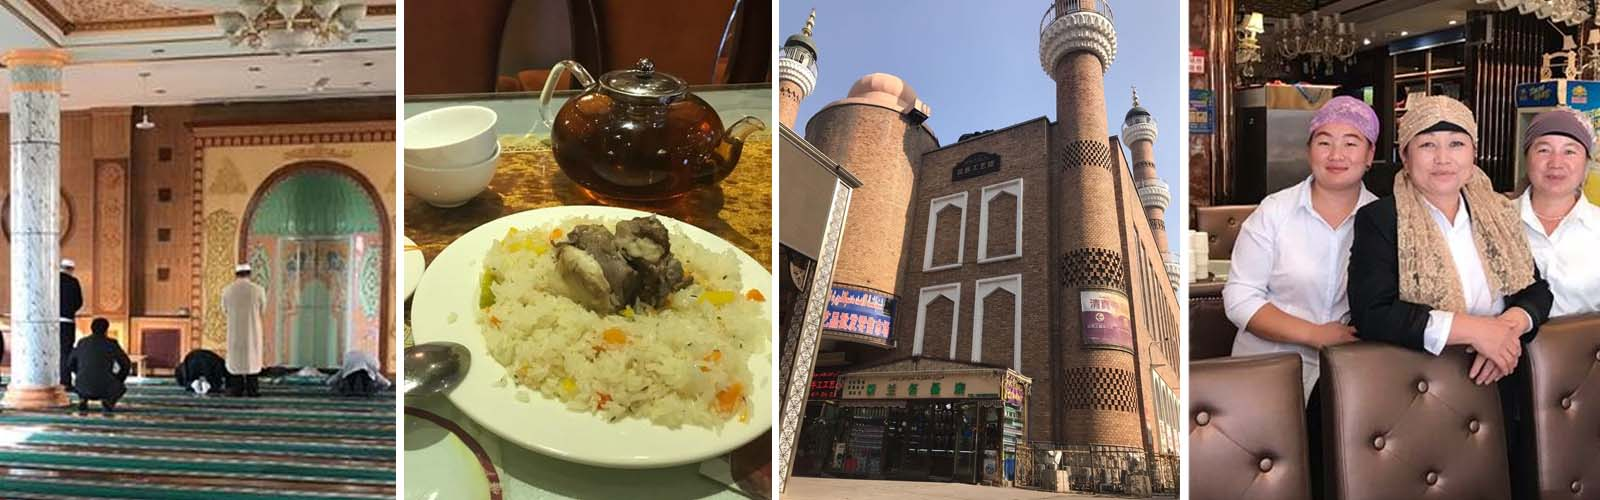 Sights and sounds of China's Muslim majority Xinjiang province